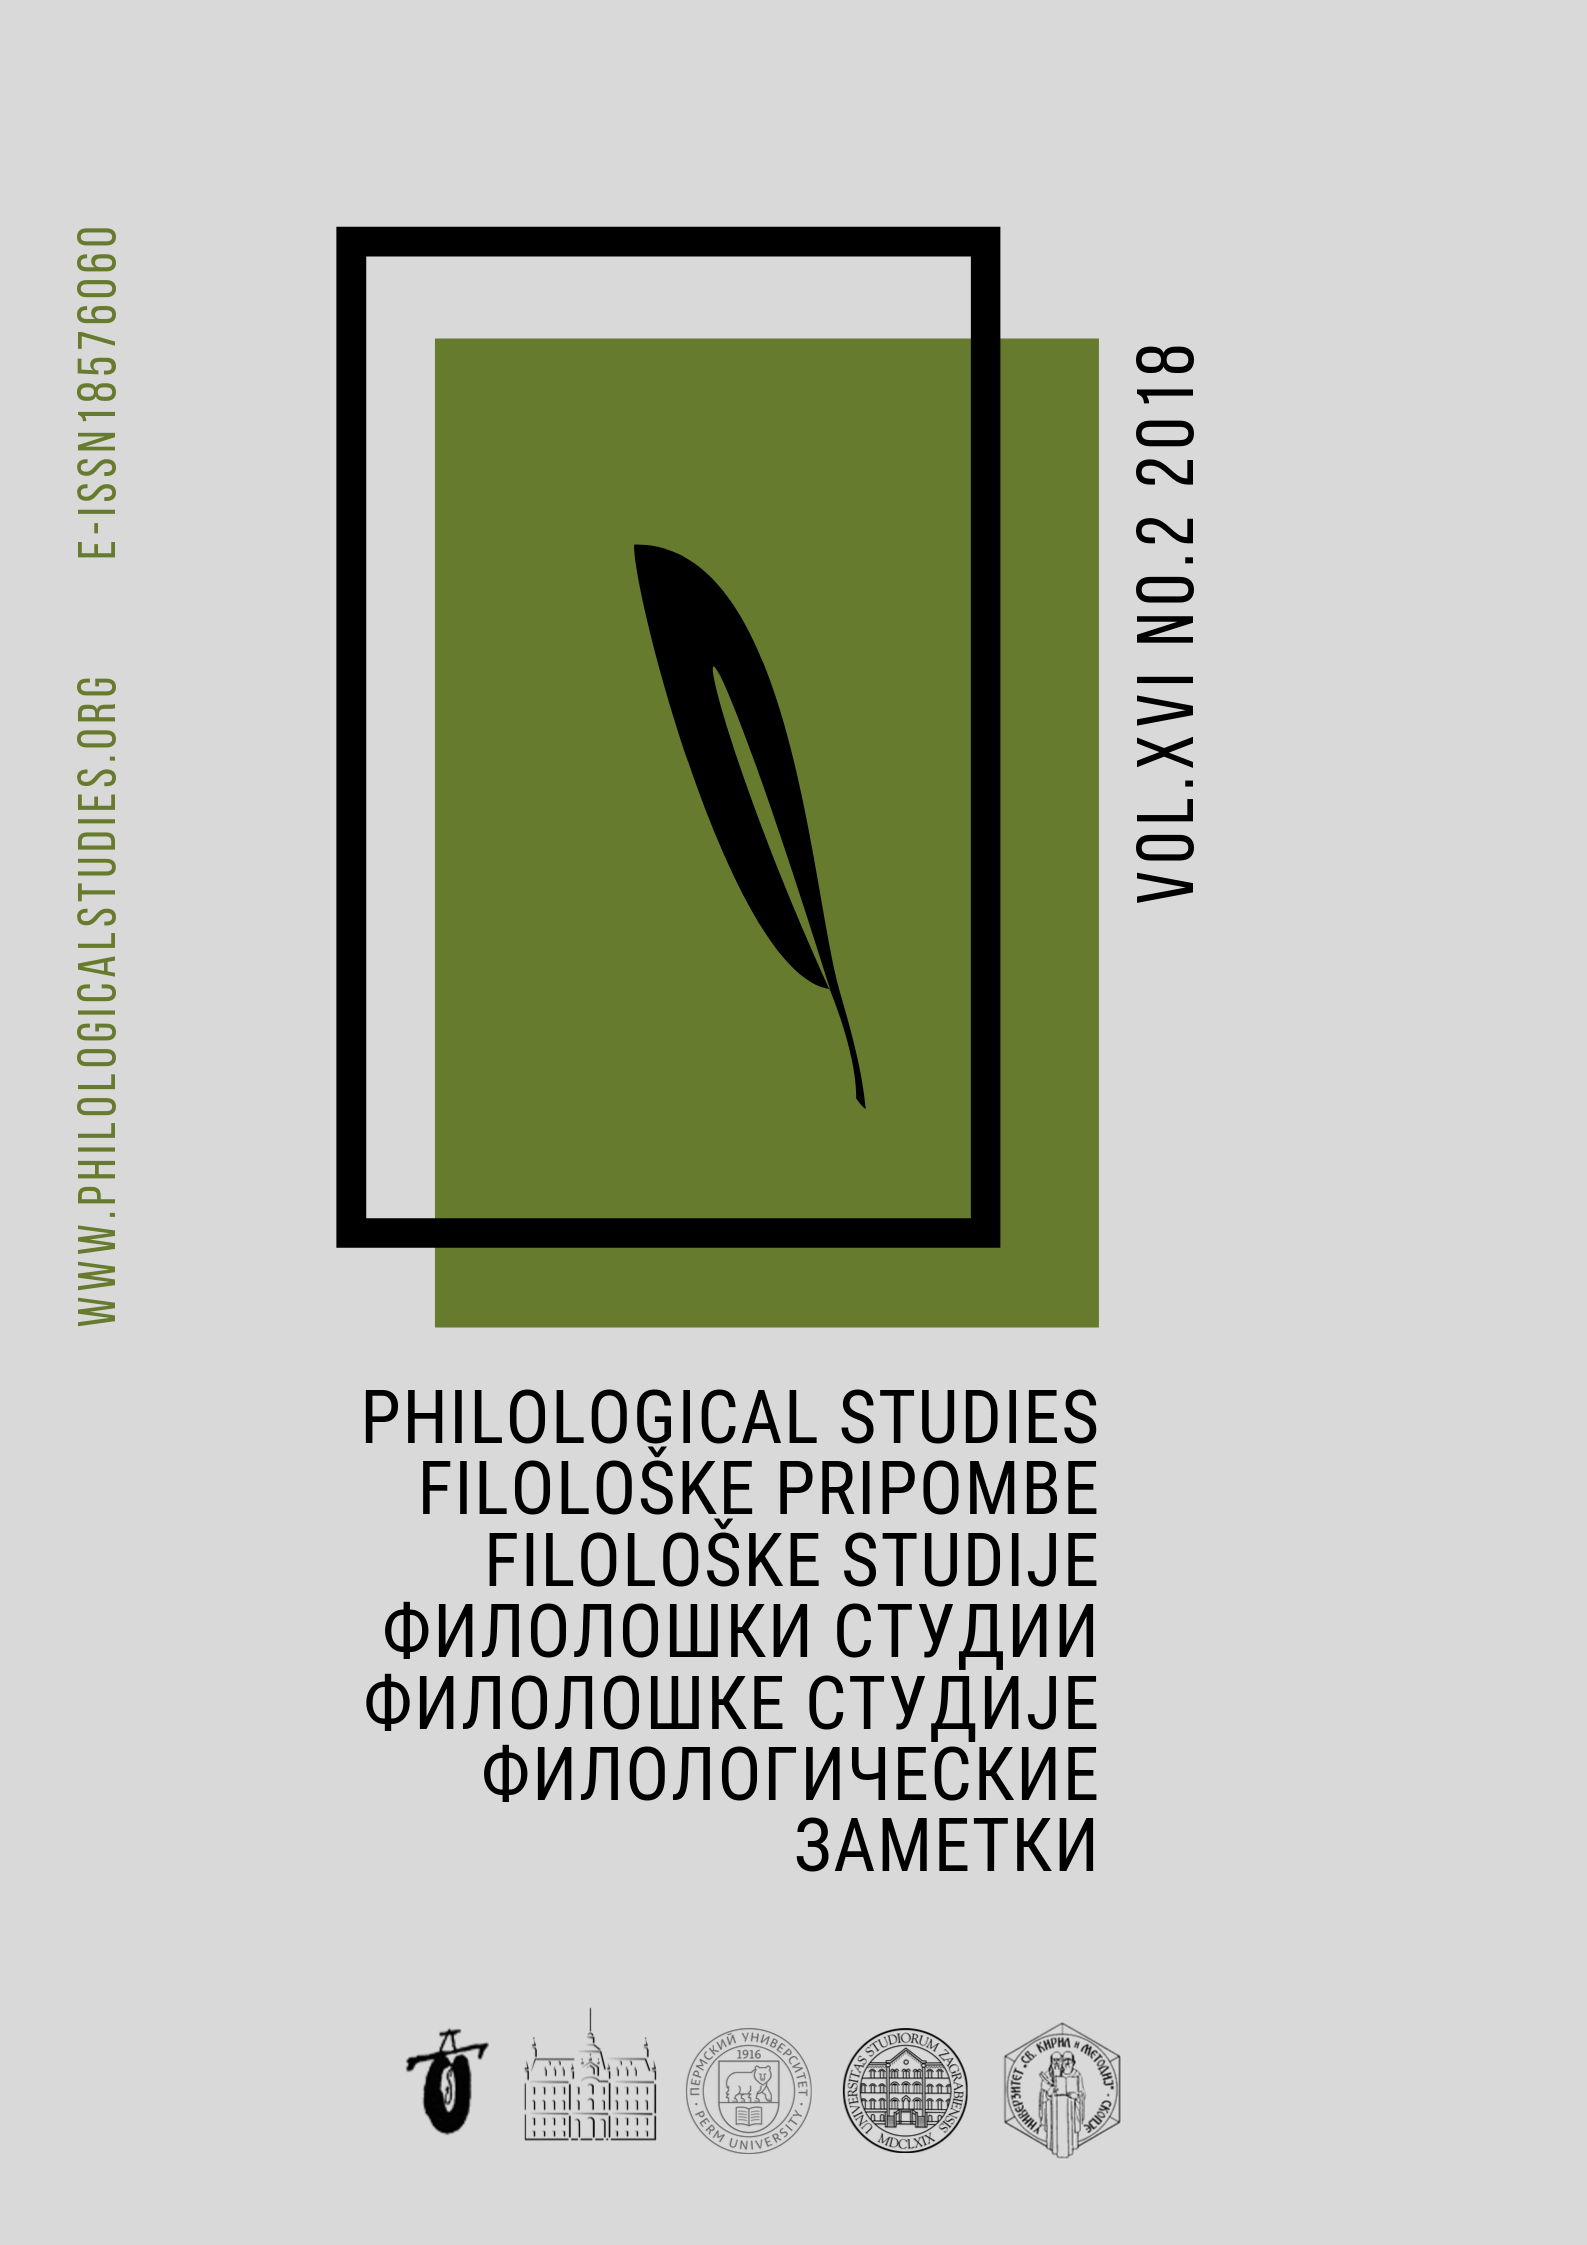 Philological Studies Vol.16 No.2 2018